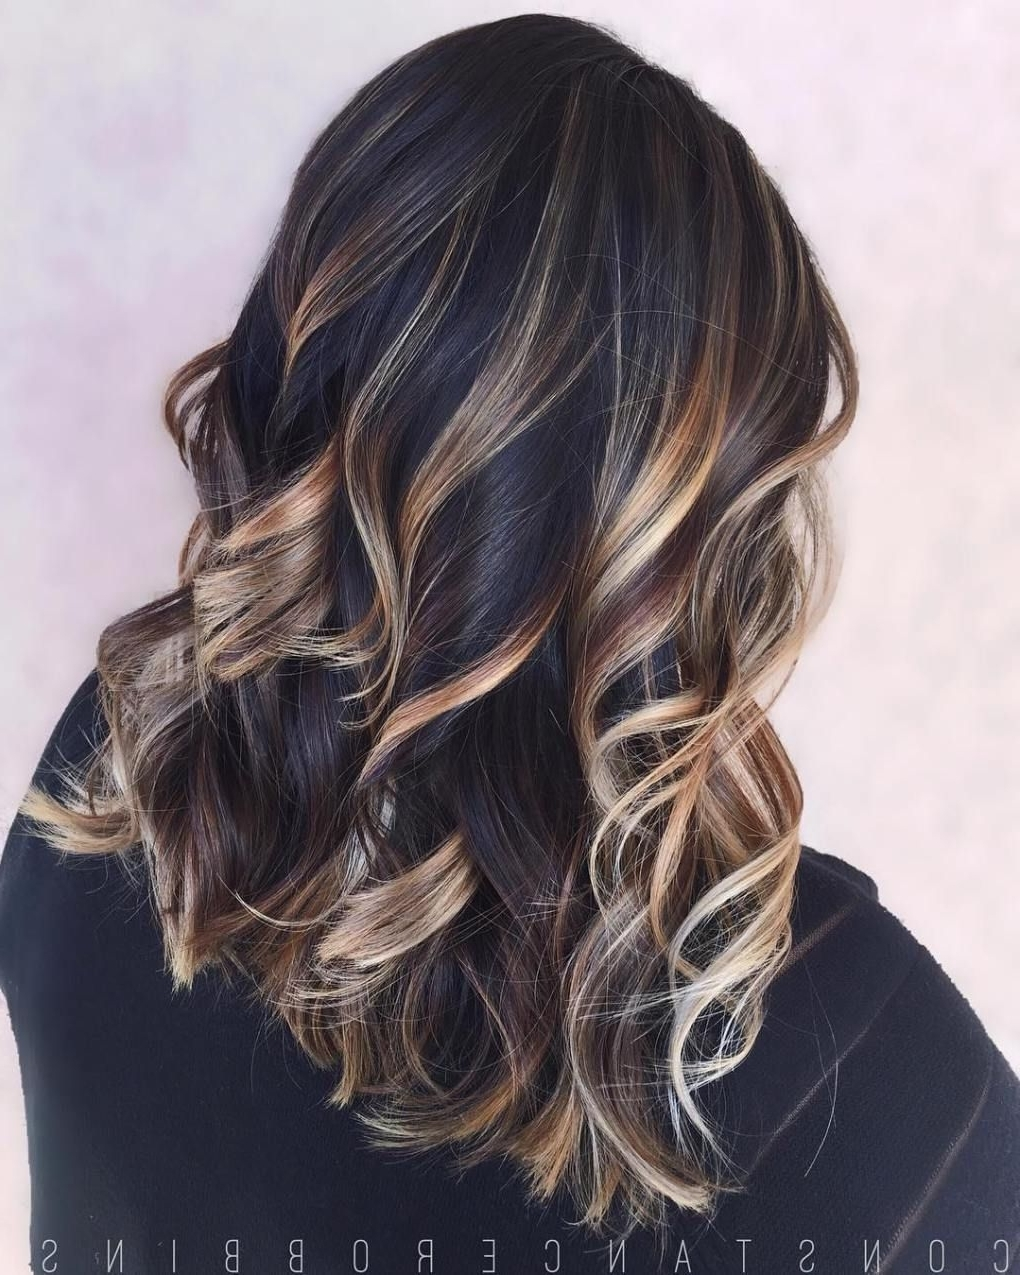 Hair Throughout Well Known Dark Locks Blonde Hairstyles With Caramel Highlights (View 8 of 20)